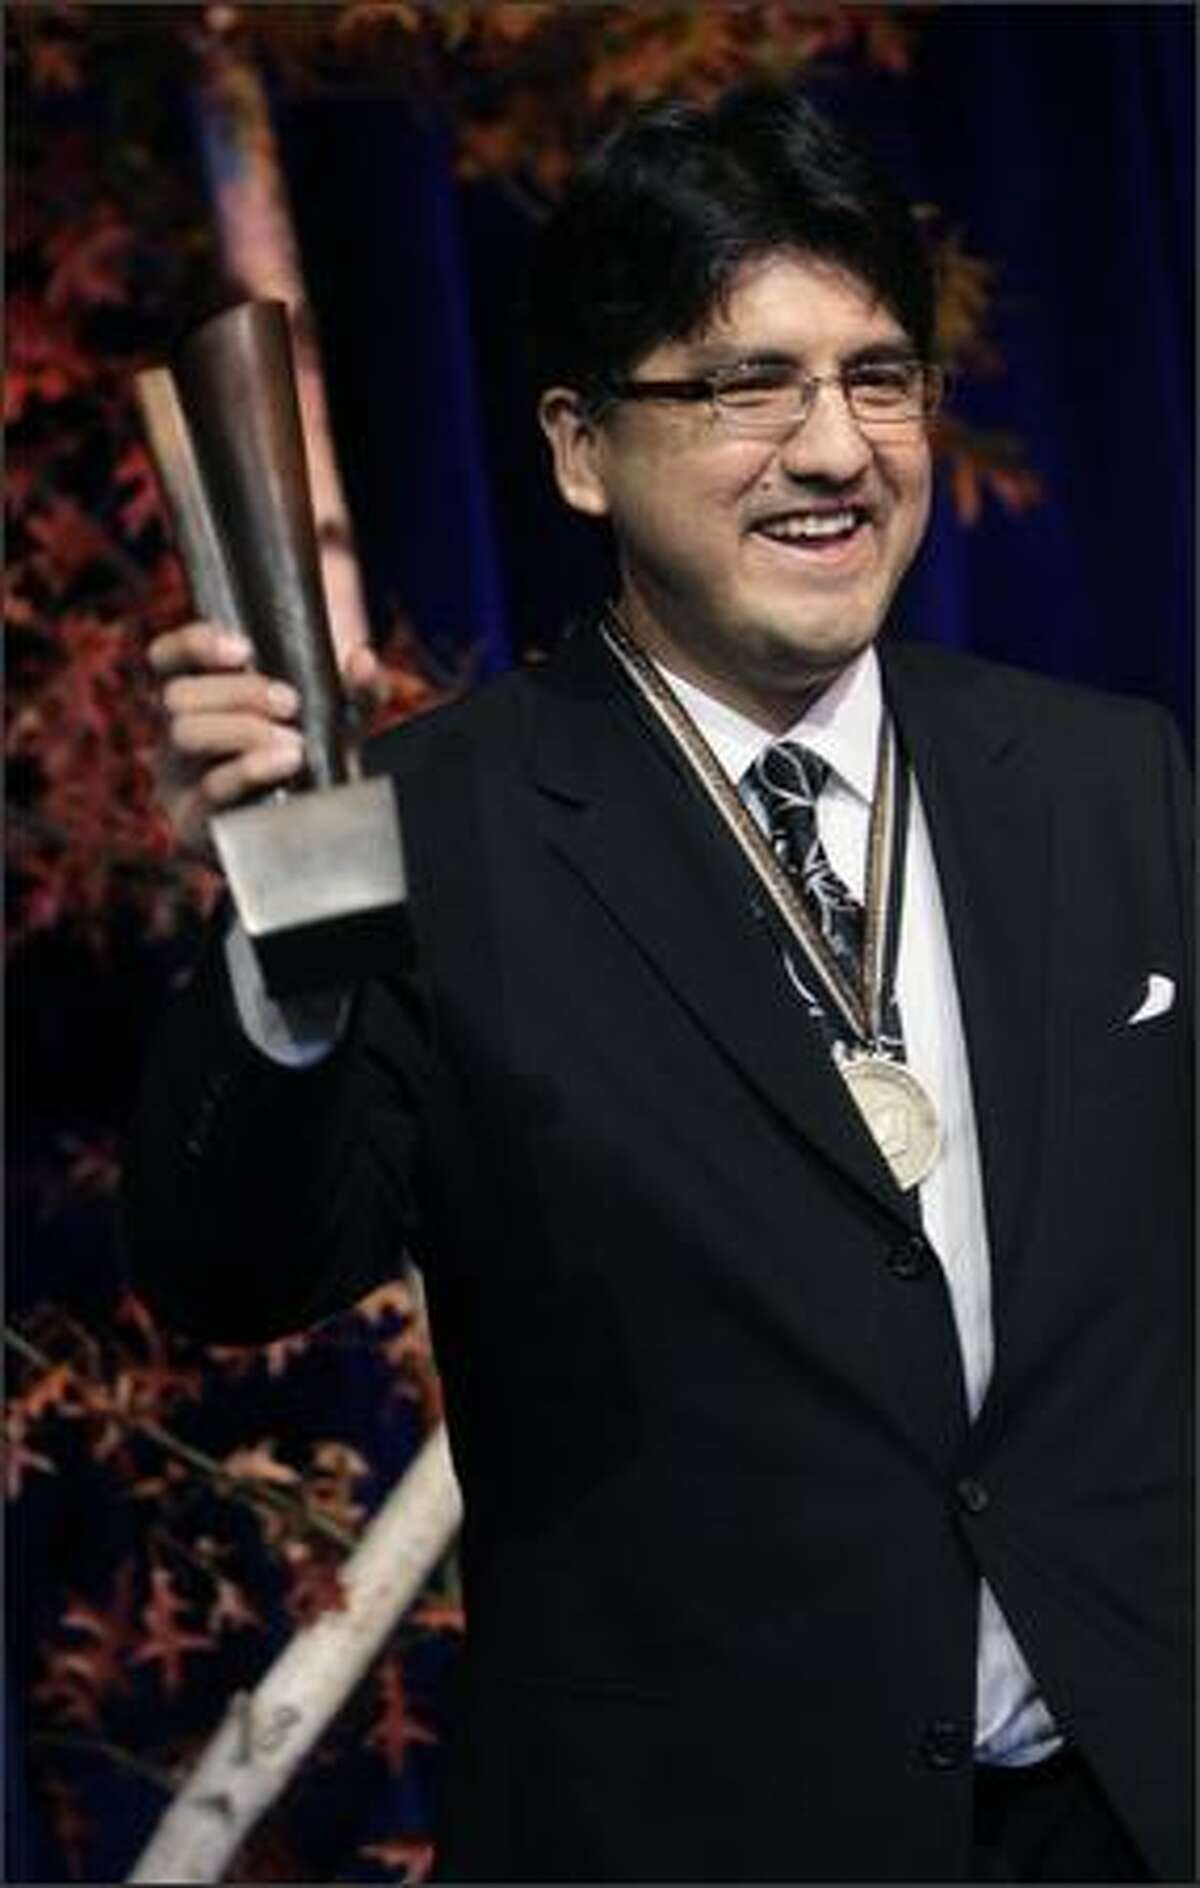 """Sherman Alexie accepts the National Book Award for Young People's Literature for his book """"The Absolutely True Diary of a Part-Time Indian"""" at the 58th National Book Awards in New York."""